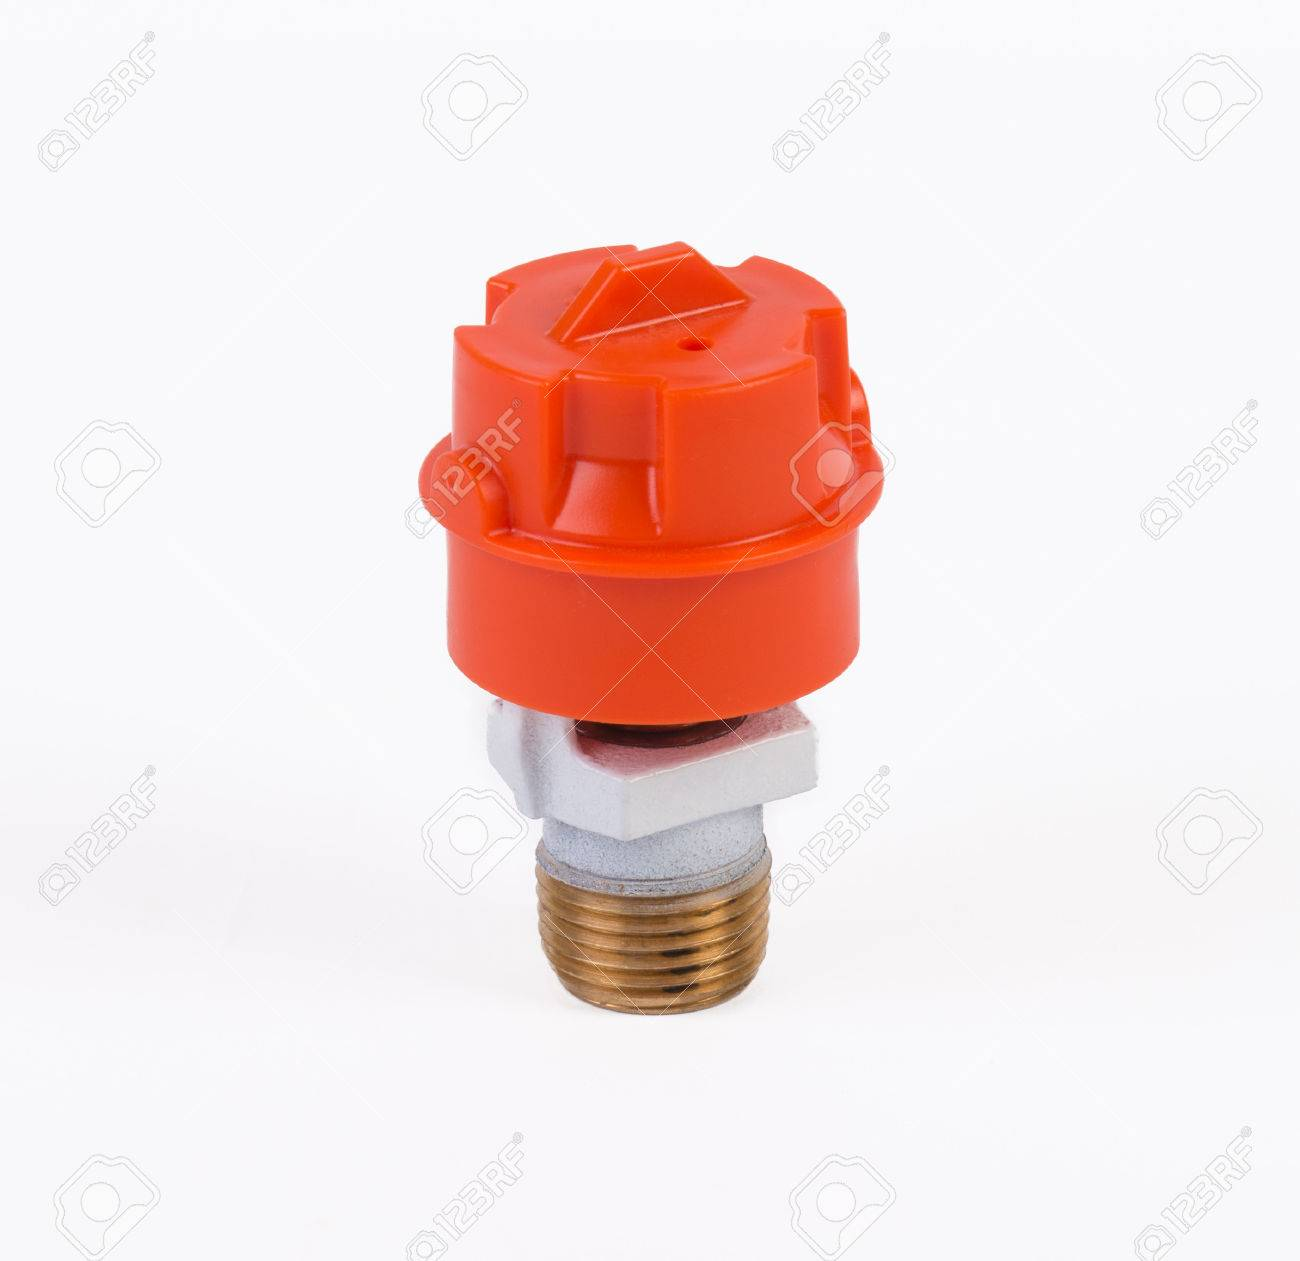 White pendent sprinkler with cap standing upright on white